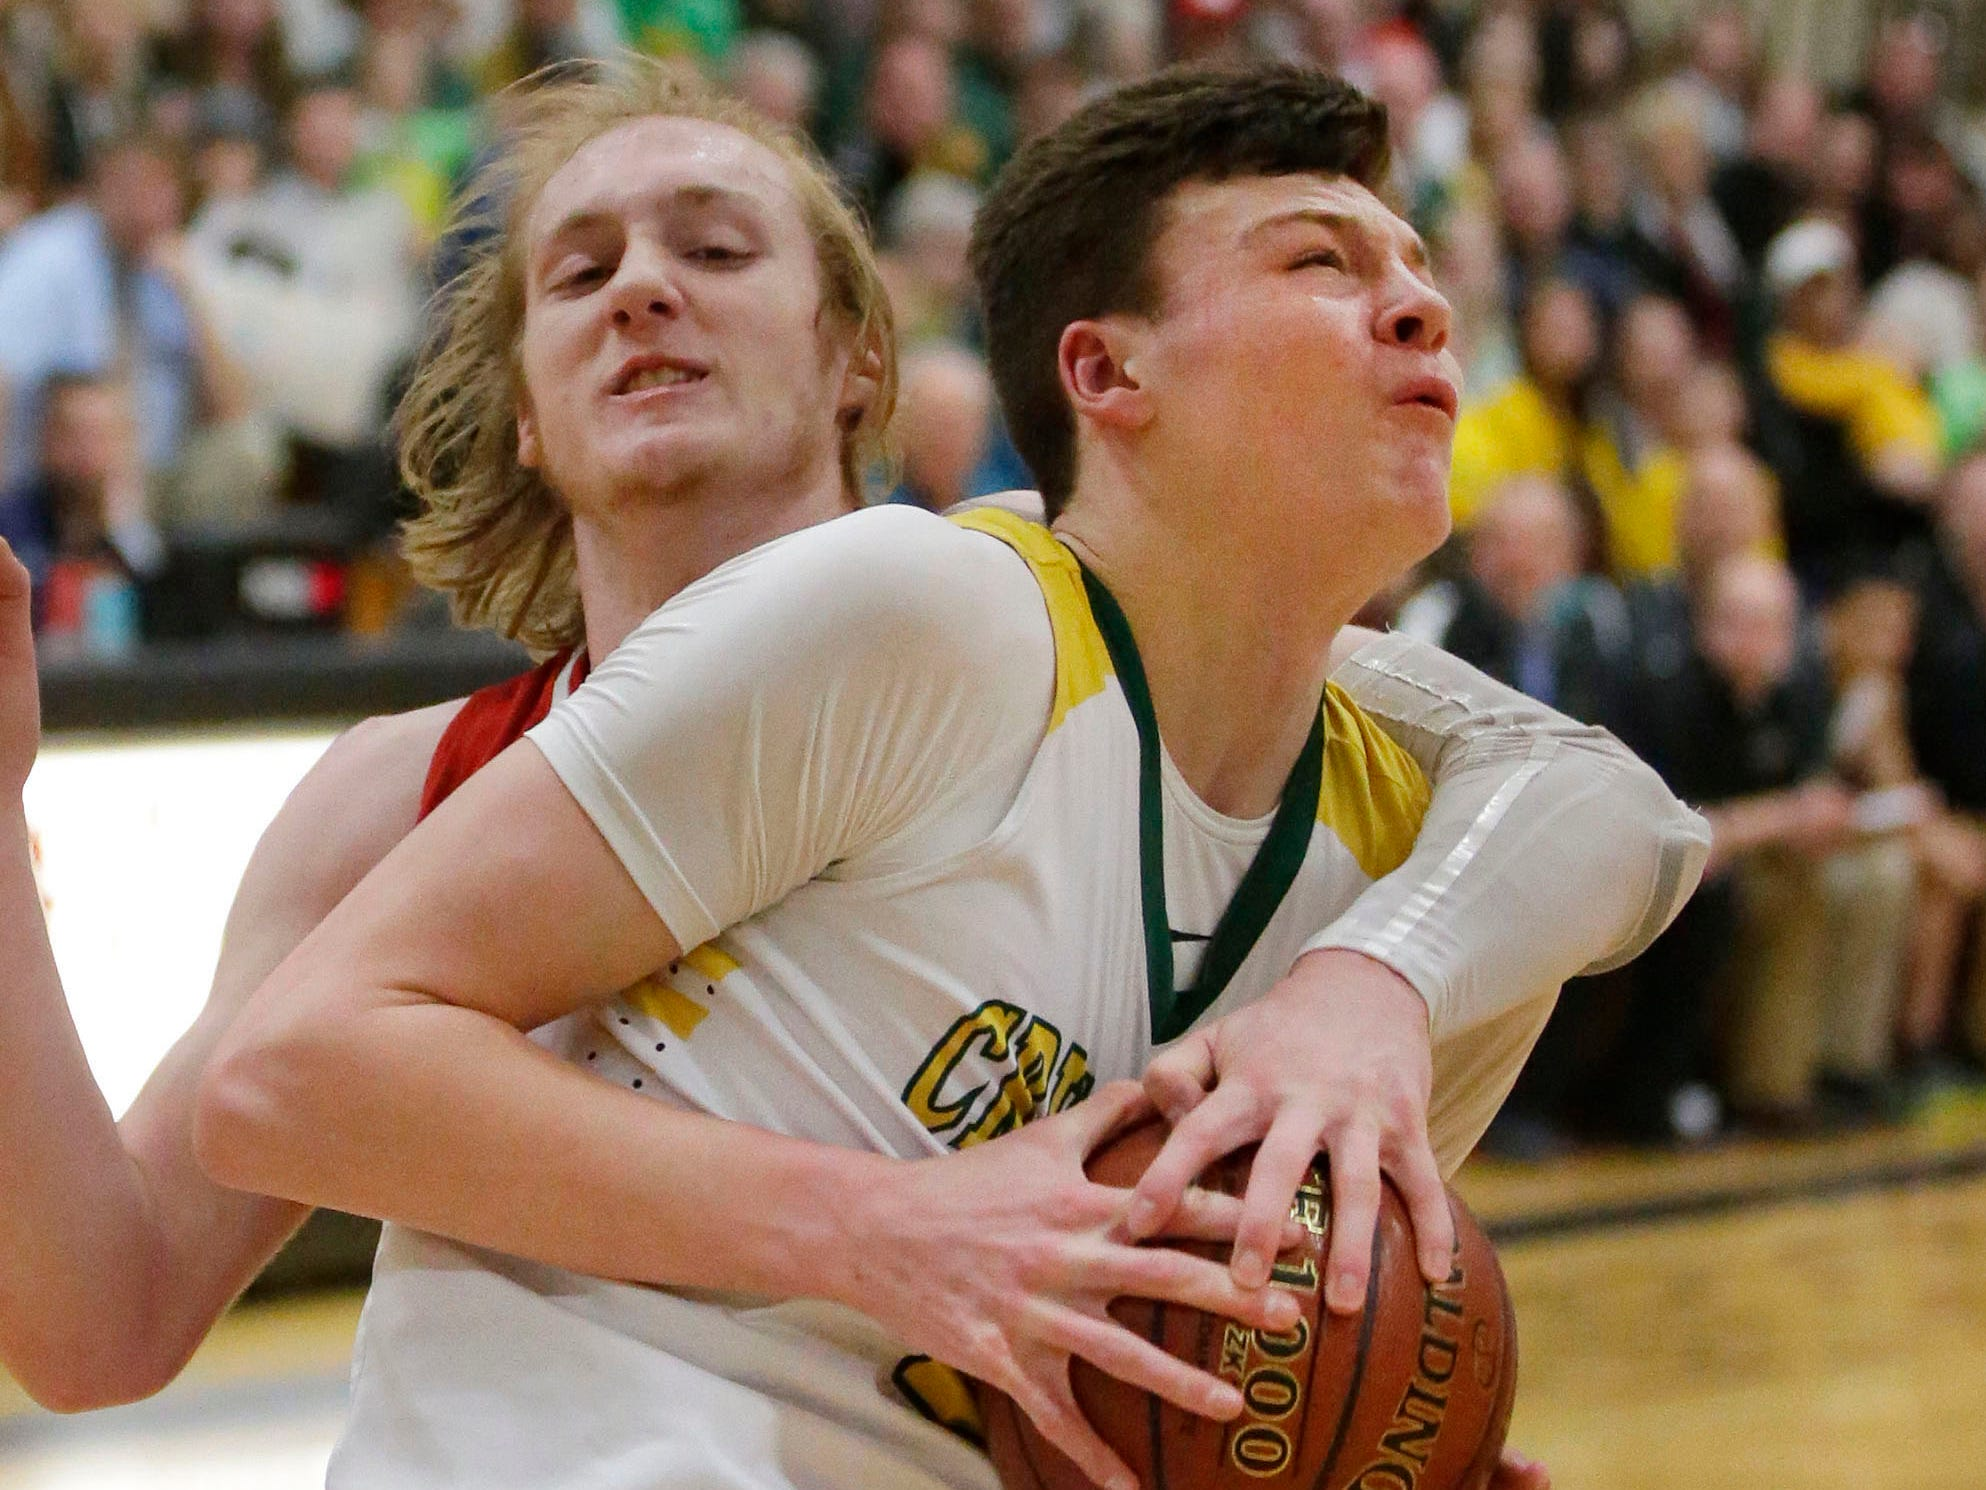 Sheboygan Lutheran's Jacob Ognacevic (23) grips the ball as Rio's Nathan Rippl (24) tries to pry the ball from him, Saturday, March 9, 2019, in West Bend, Wis.